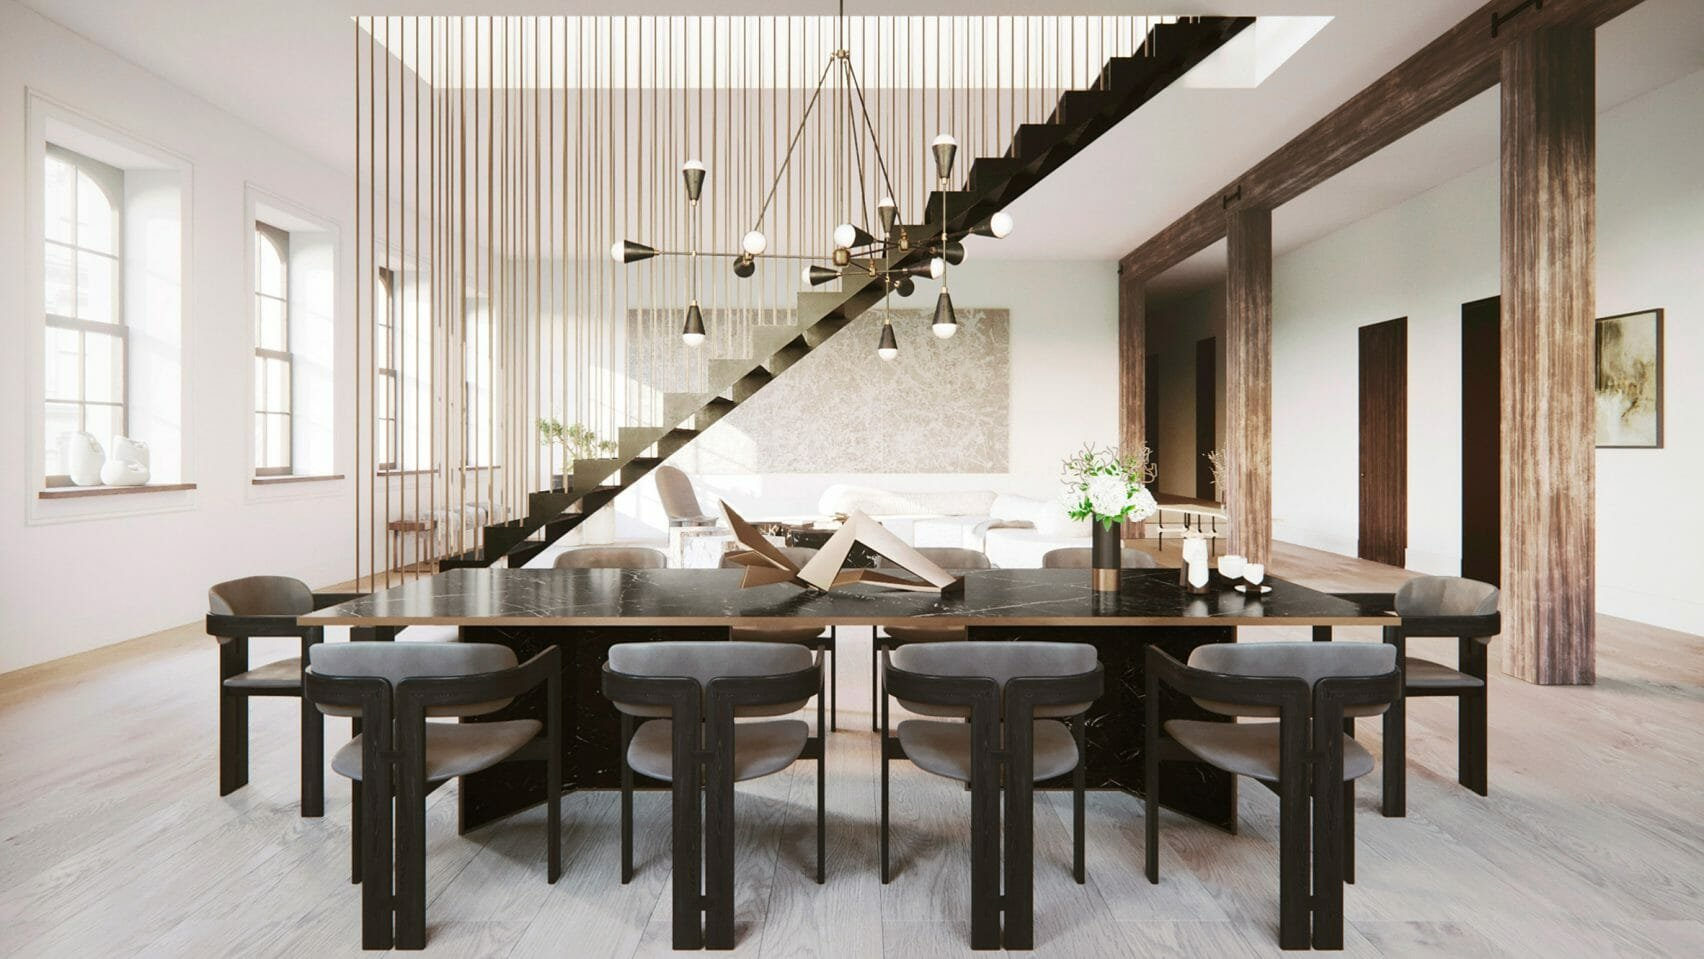 High End NYC Loft Interior Design with Hanging Staircase